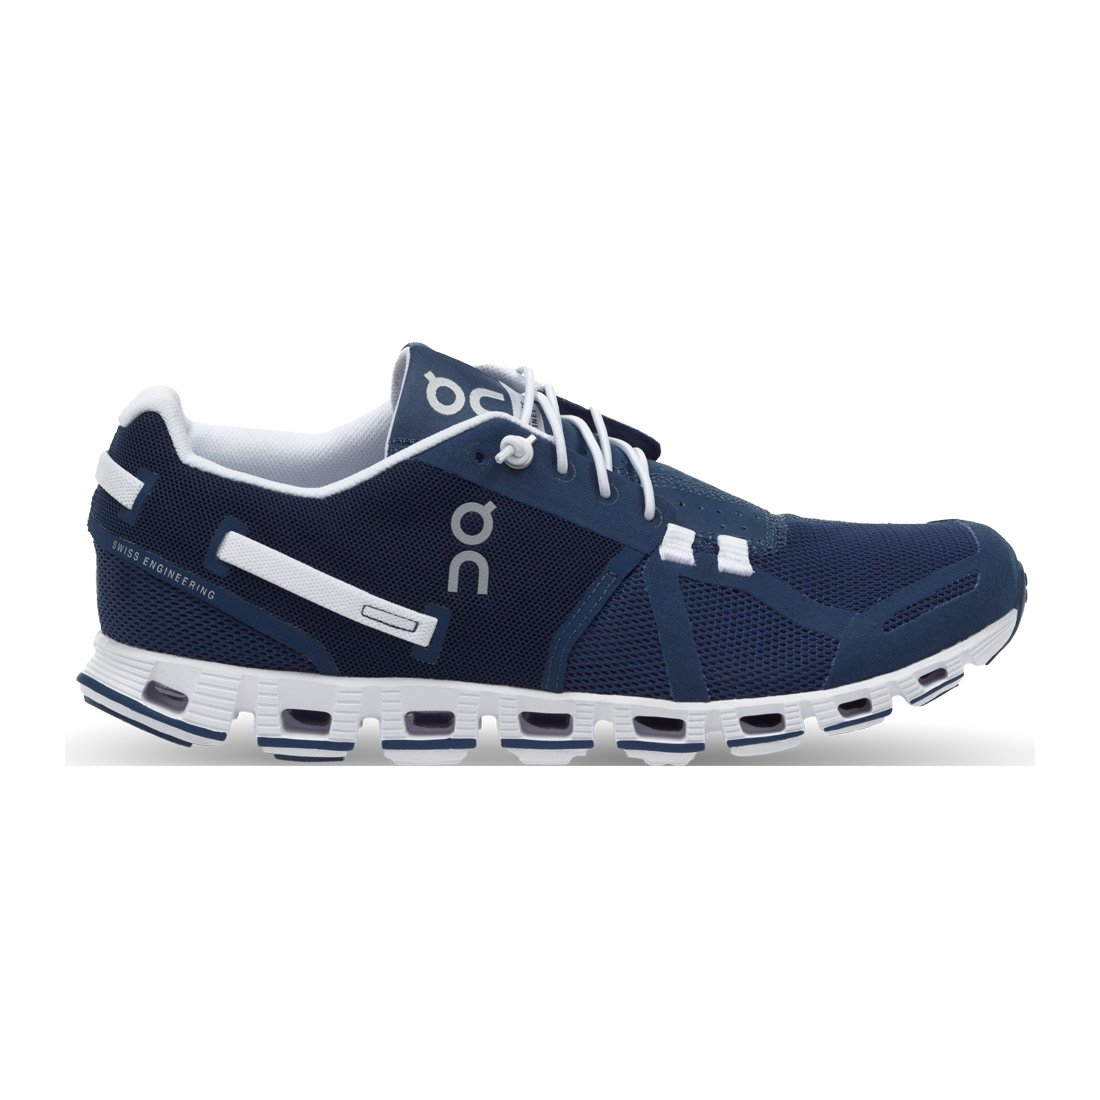 On Running Women's Cloud Active Shoe Denim/White Size 7.5 by On Running (Image #1)